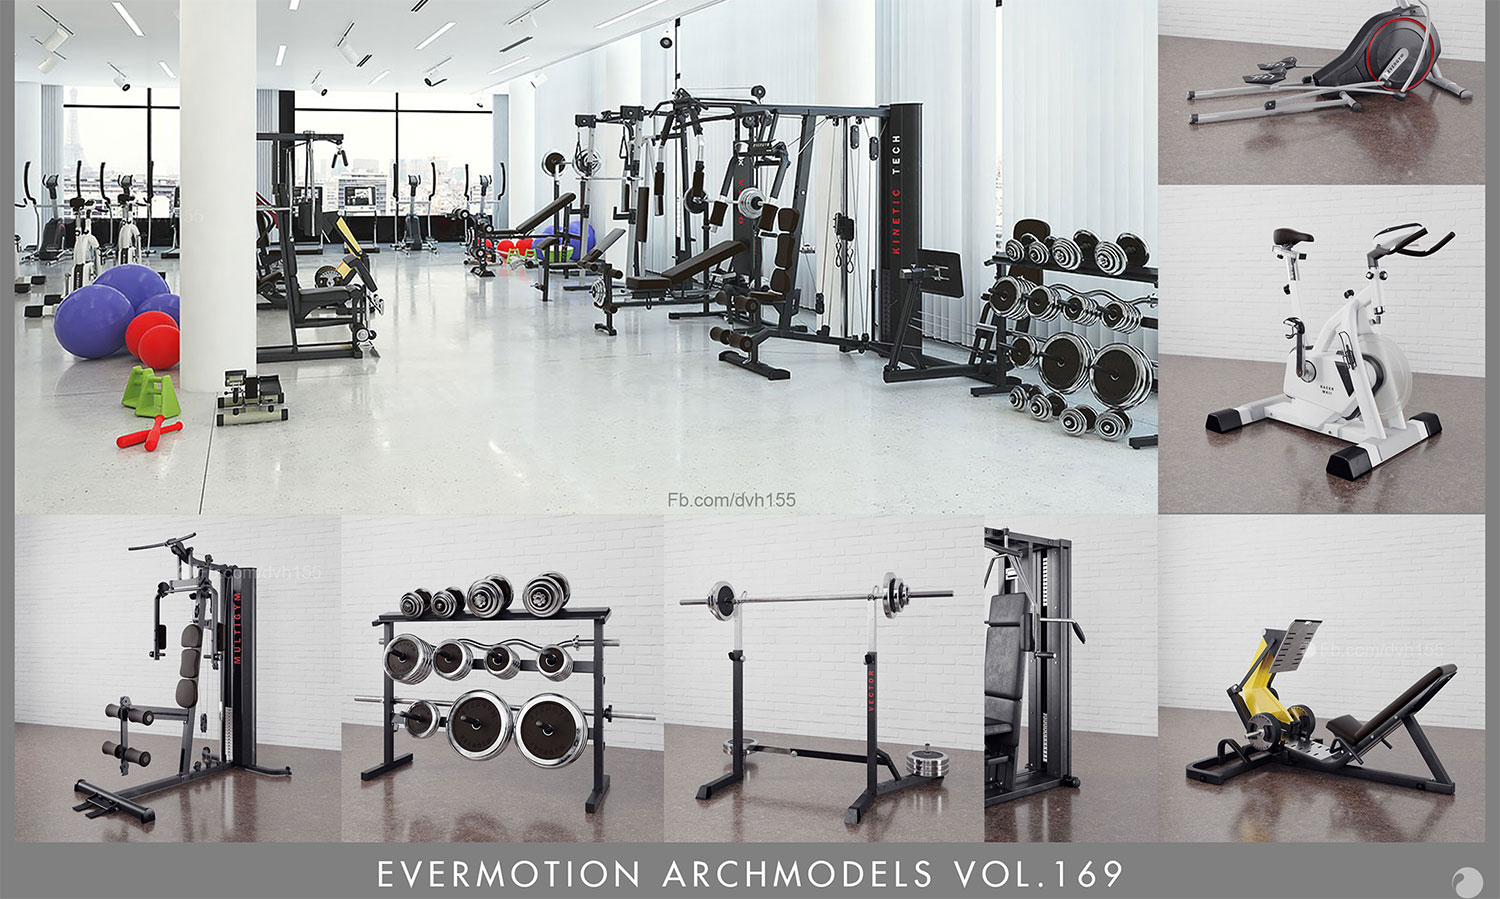 Evermotion Archmodels vol 169